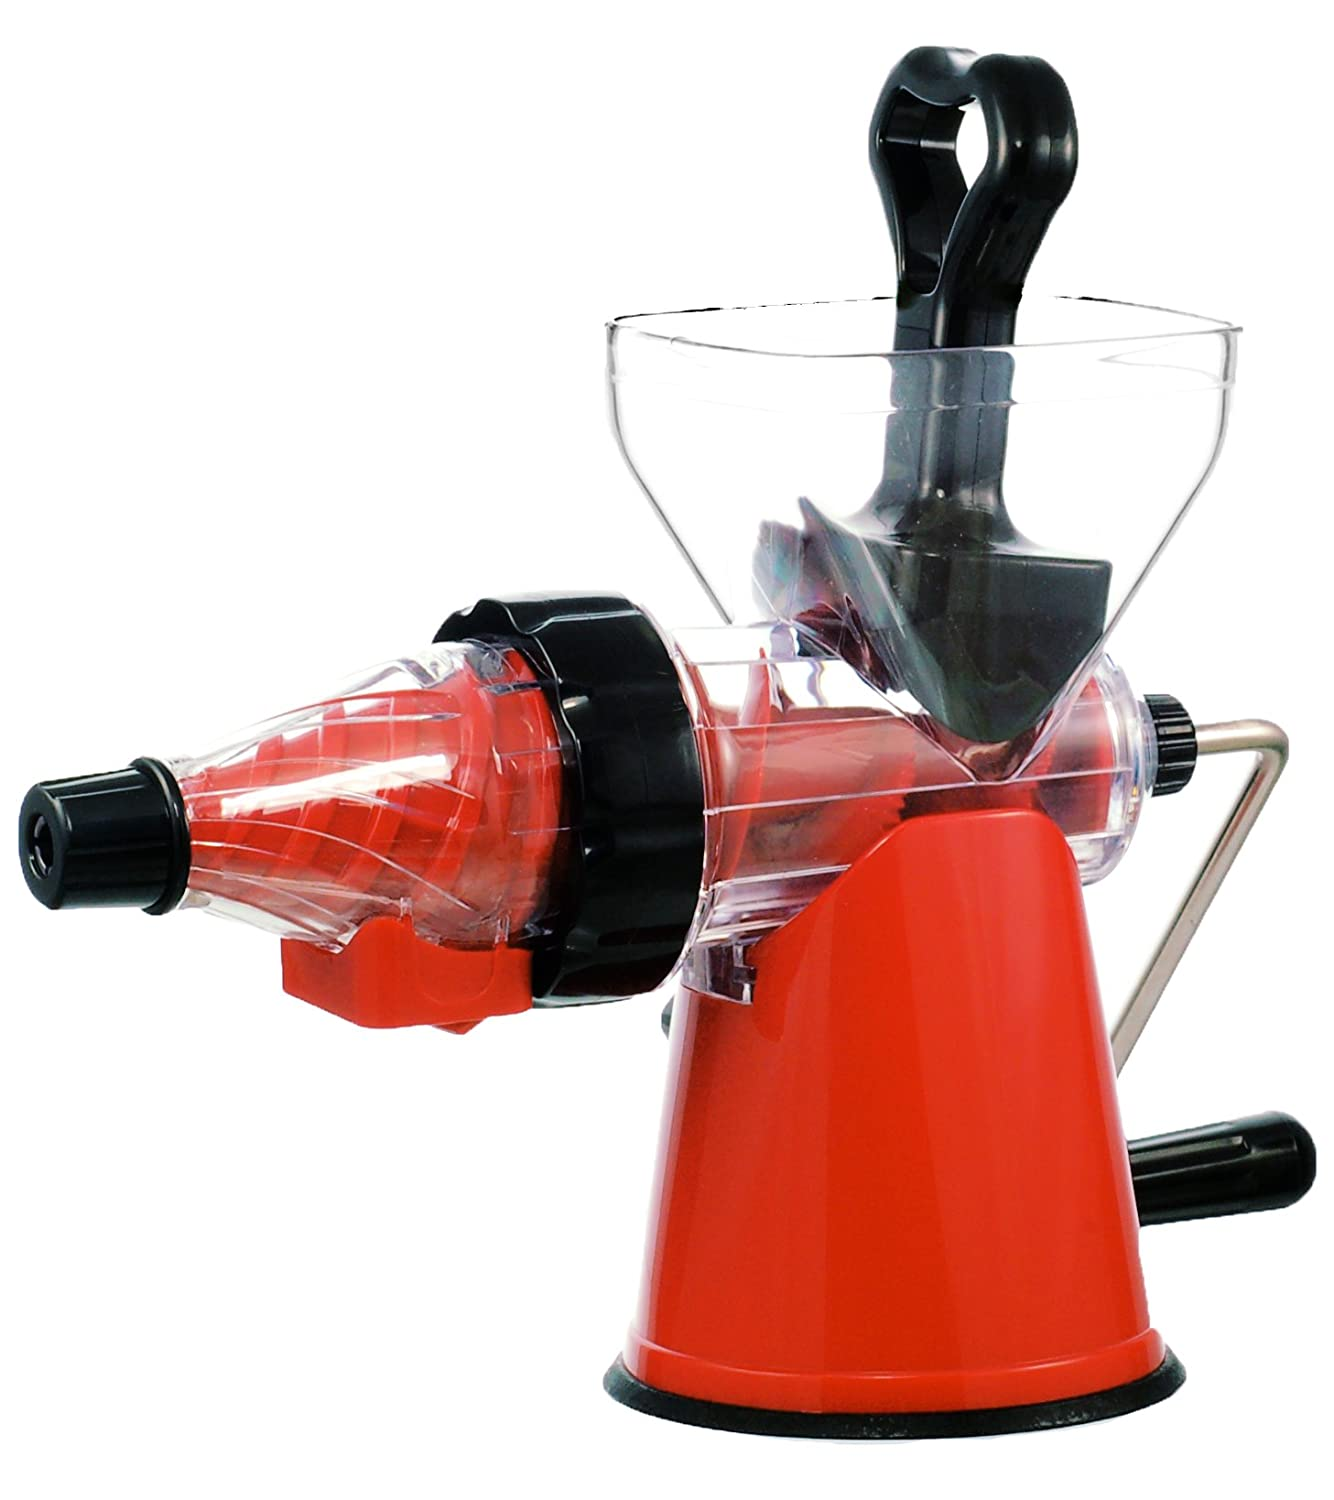 Zweissen Cold Press Juicer : ZWEISSEN Hand Operated Fruit vegetable Masticating Slow juicer Cold Press pulp e eBay